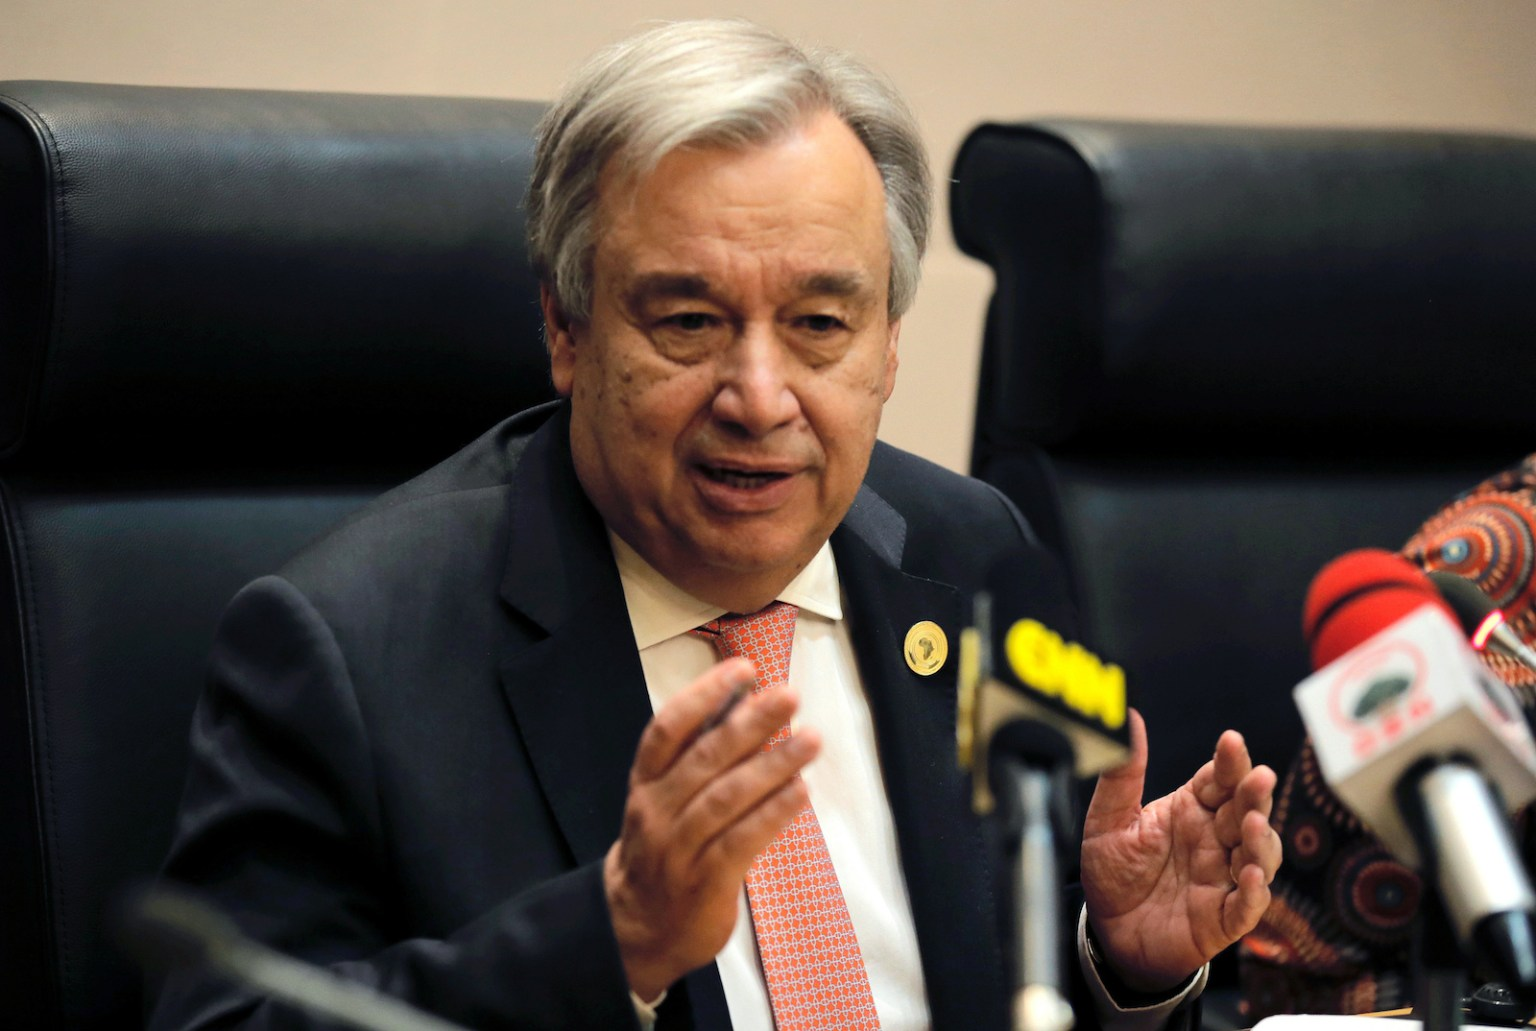 Millions could die if virus not checked: UN chief